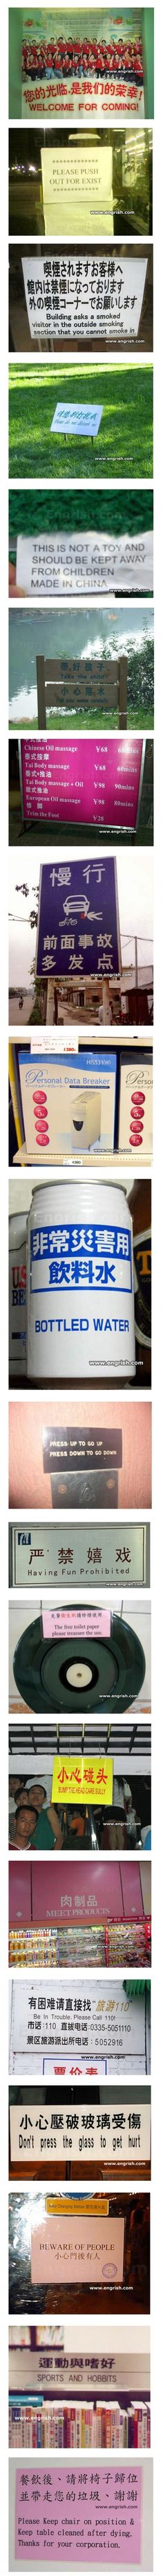 Engrish! Oh! This made me laugh so much!